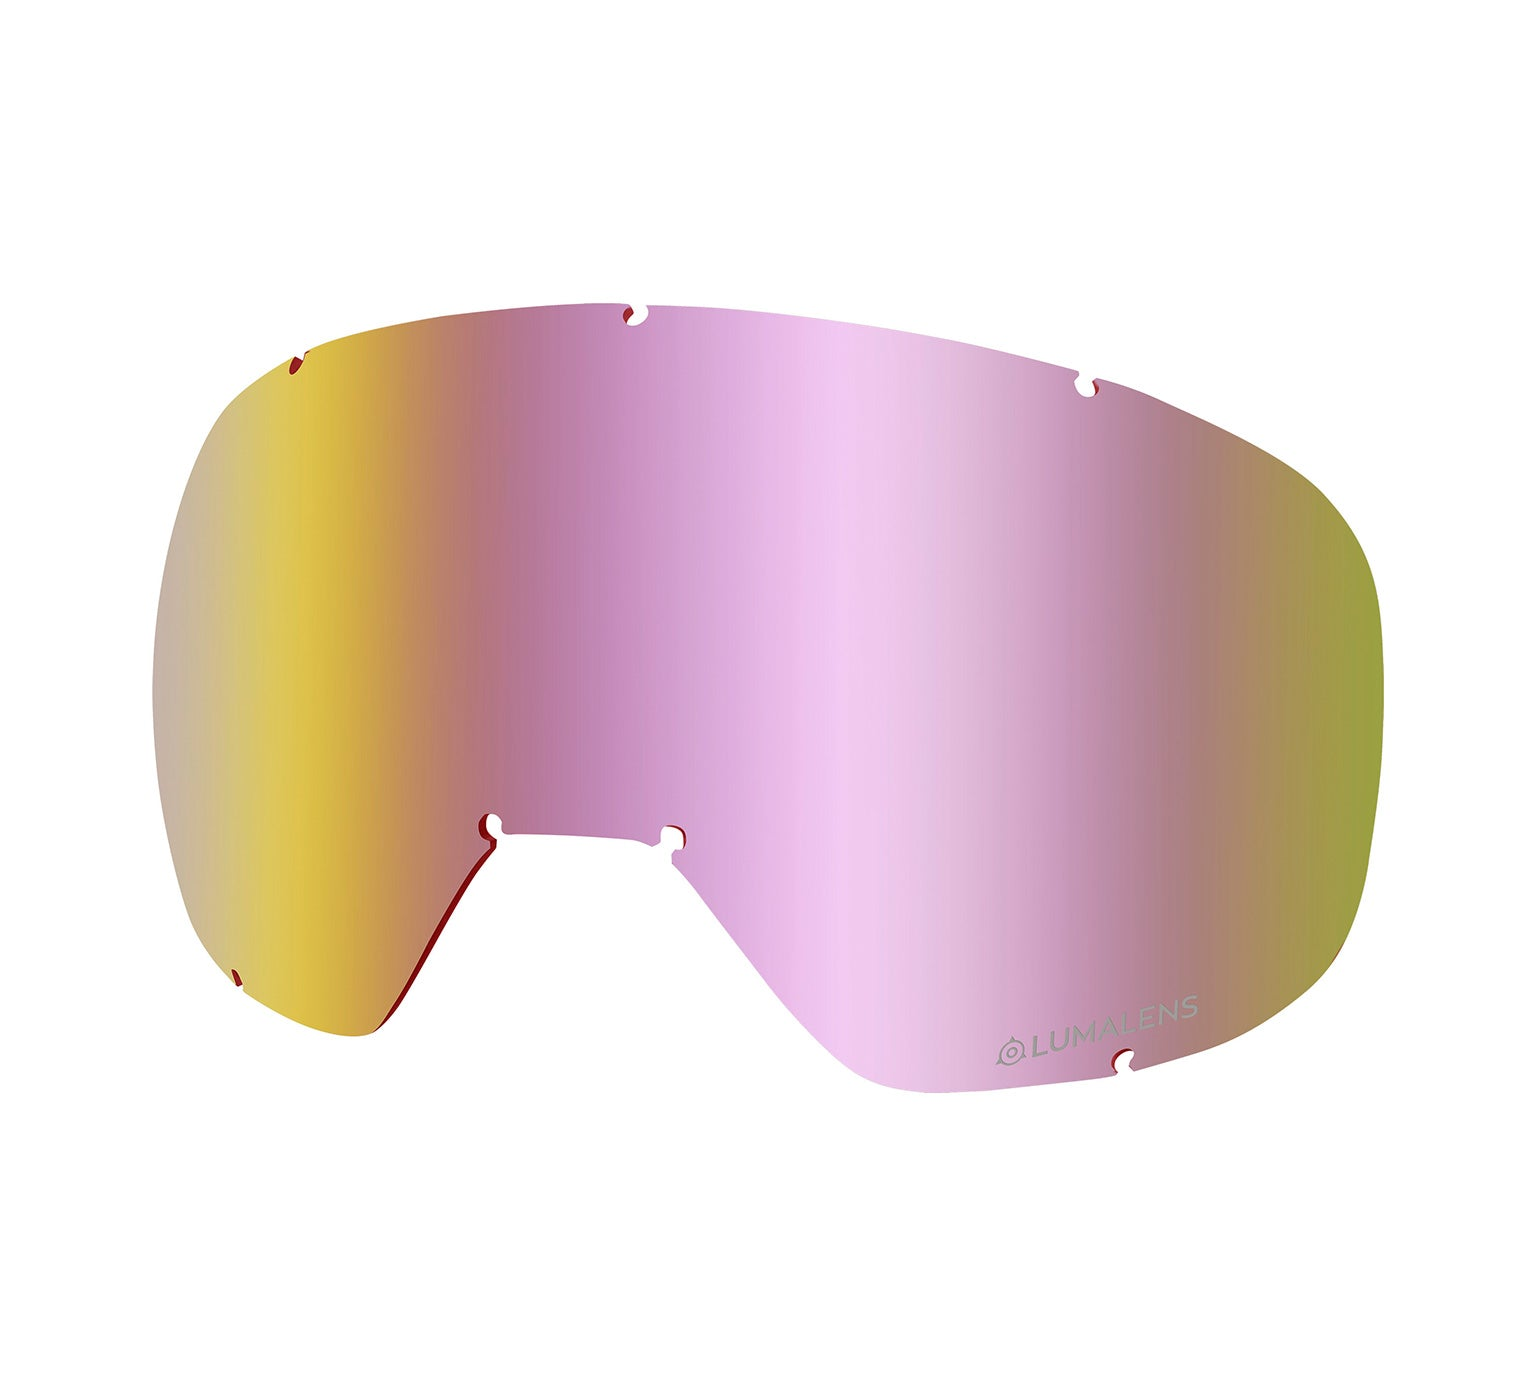 D3 OTG Replacement Lens ; Lumalens Pink Ionized